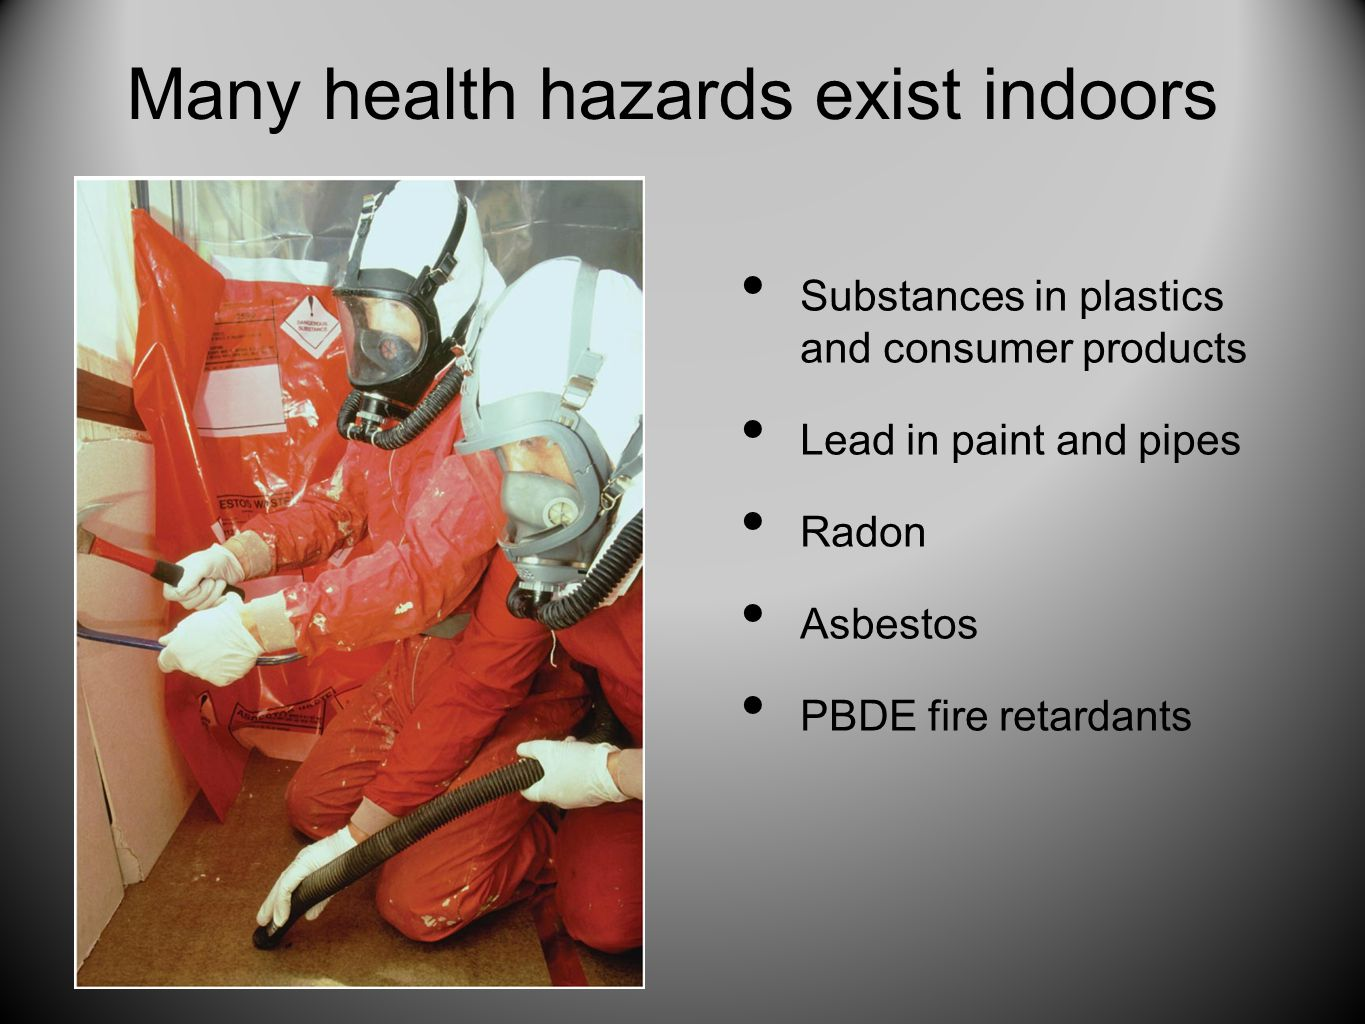 Many health hazards exist indoors